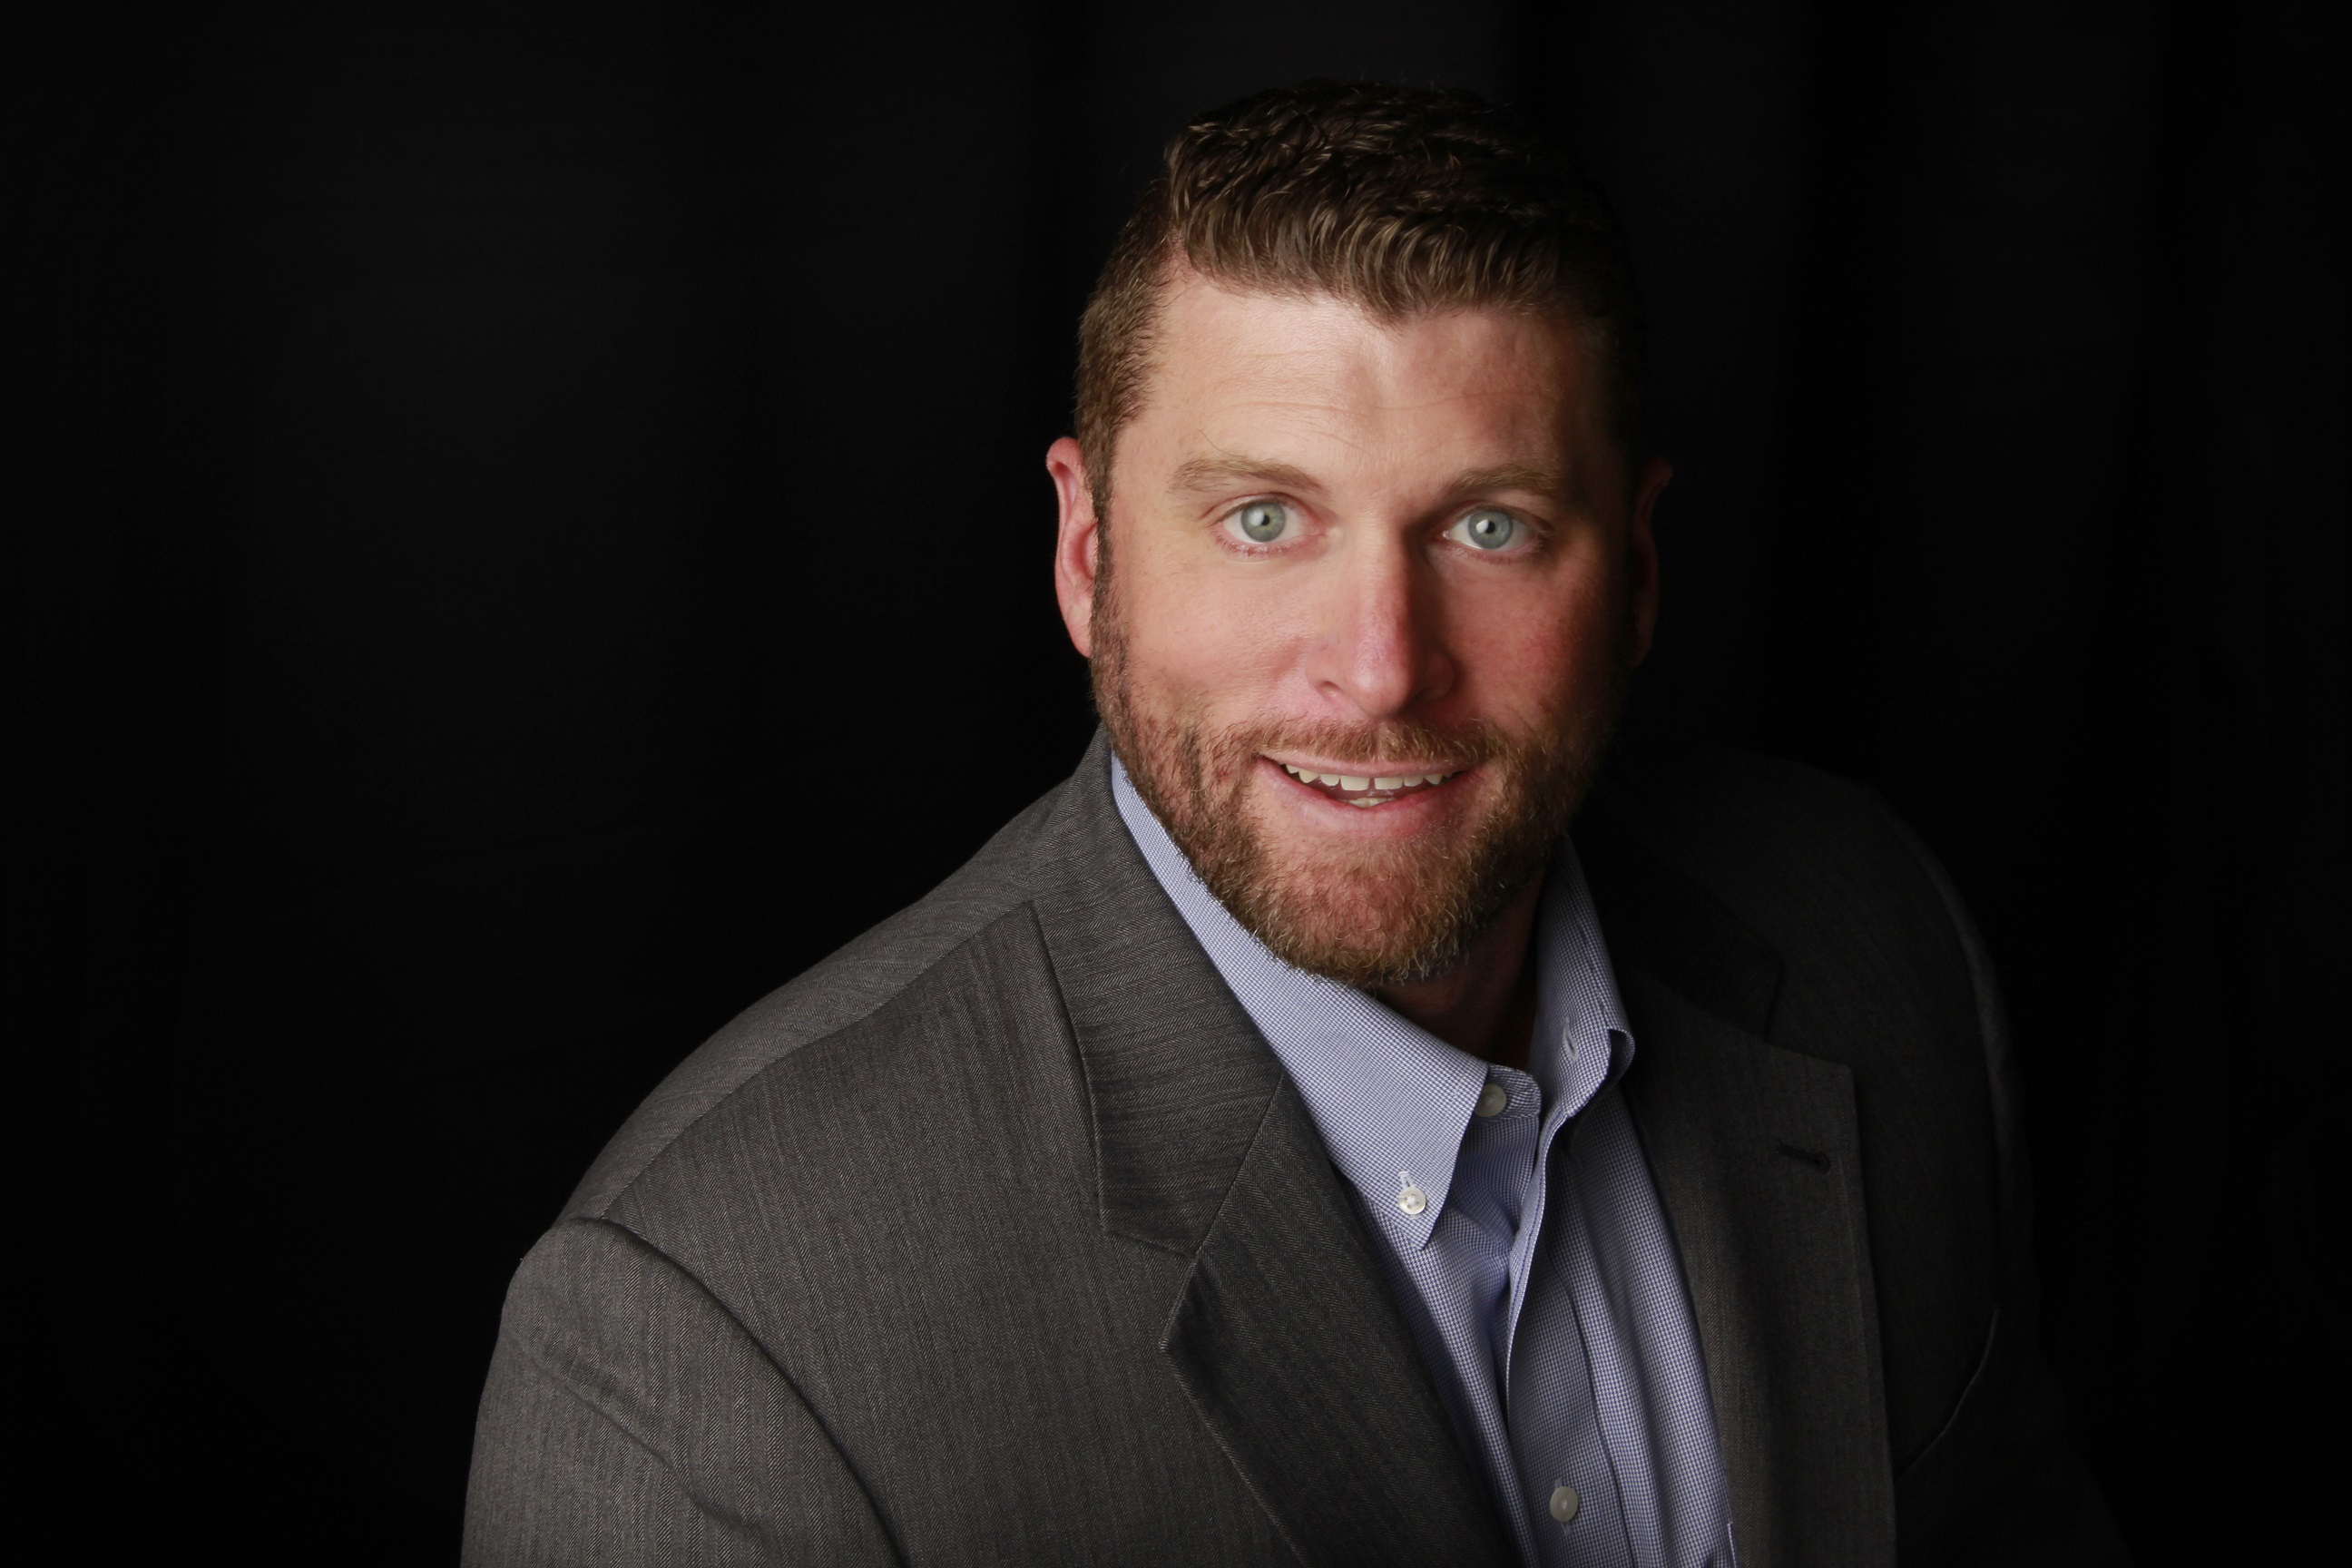 Shane Hesters, New VP at Jordan Foster Construction